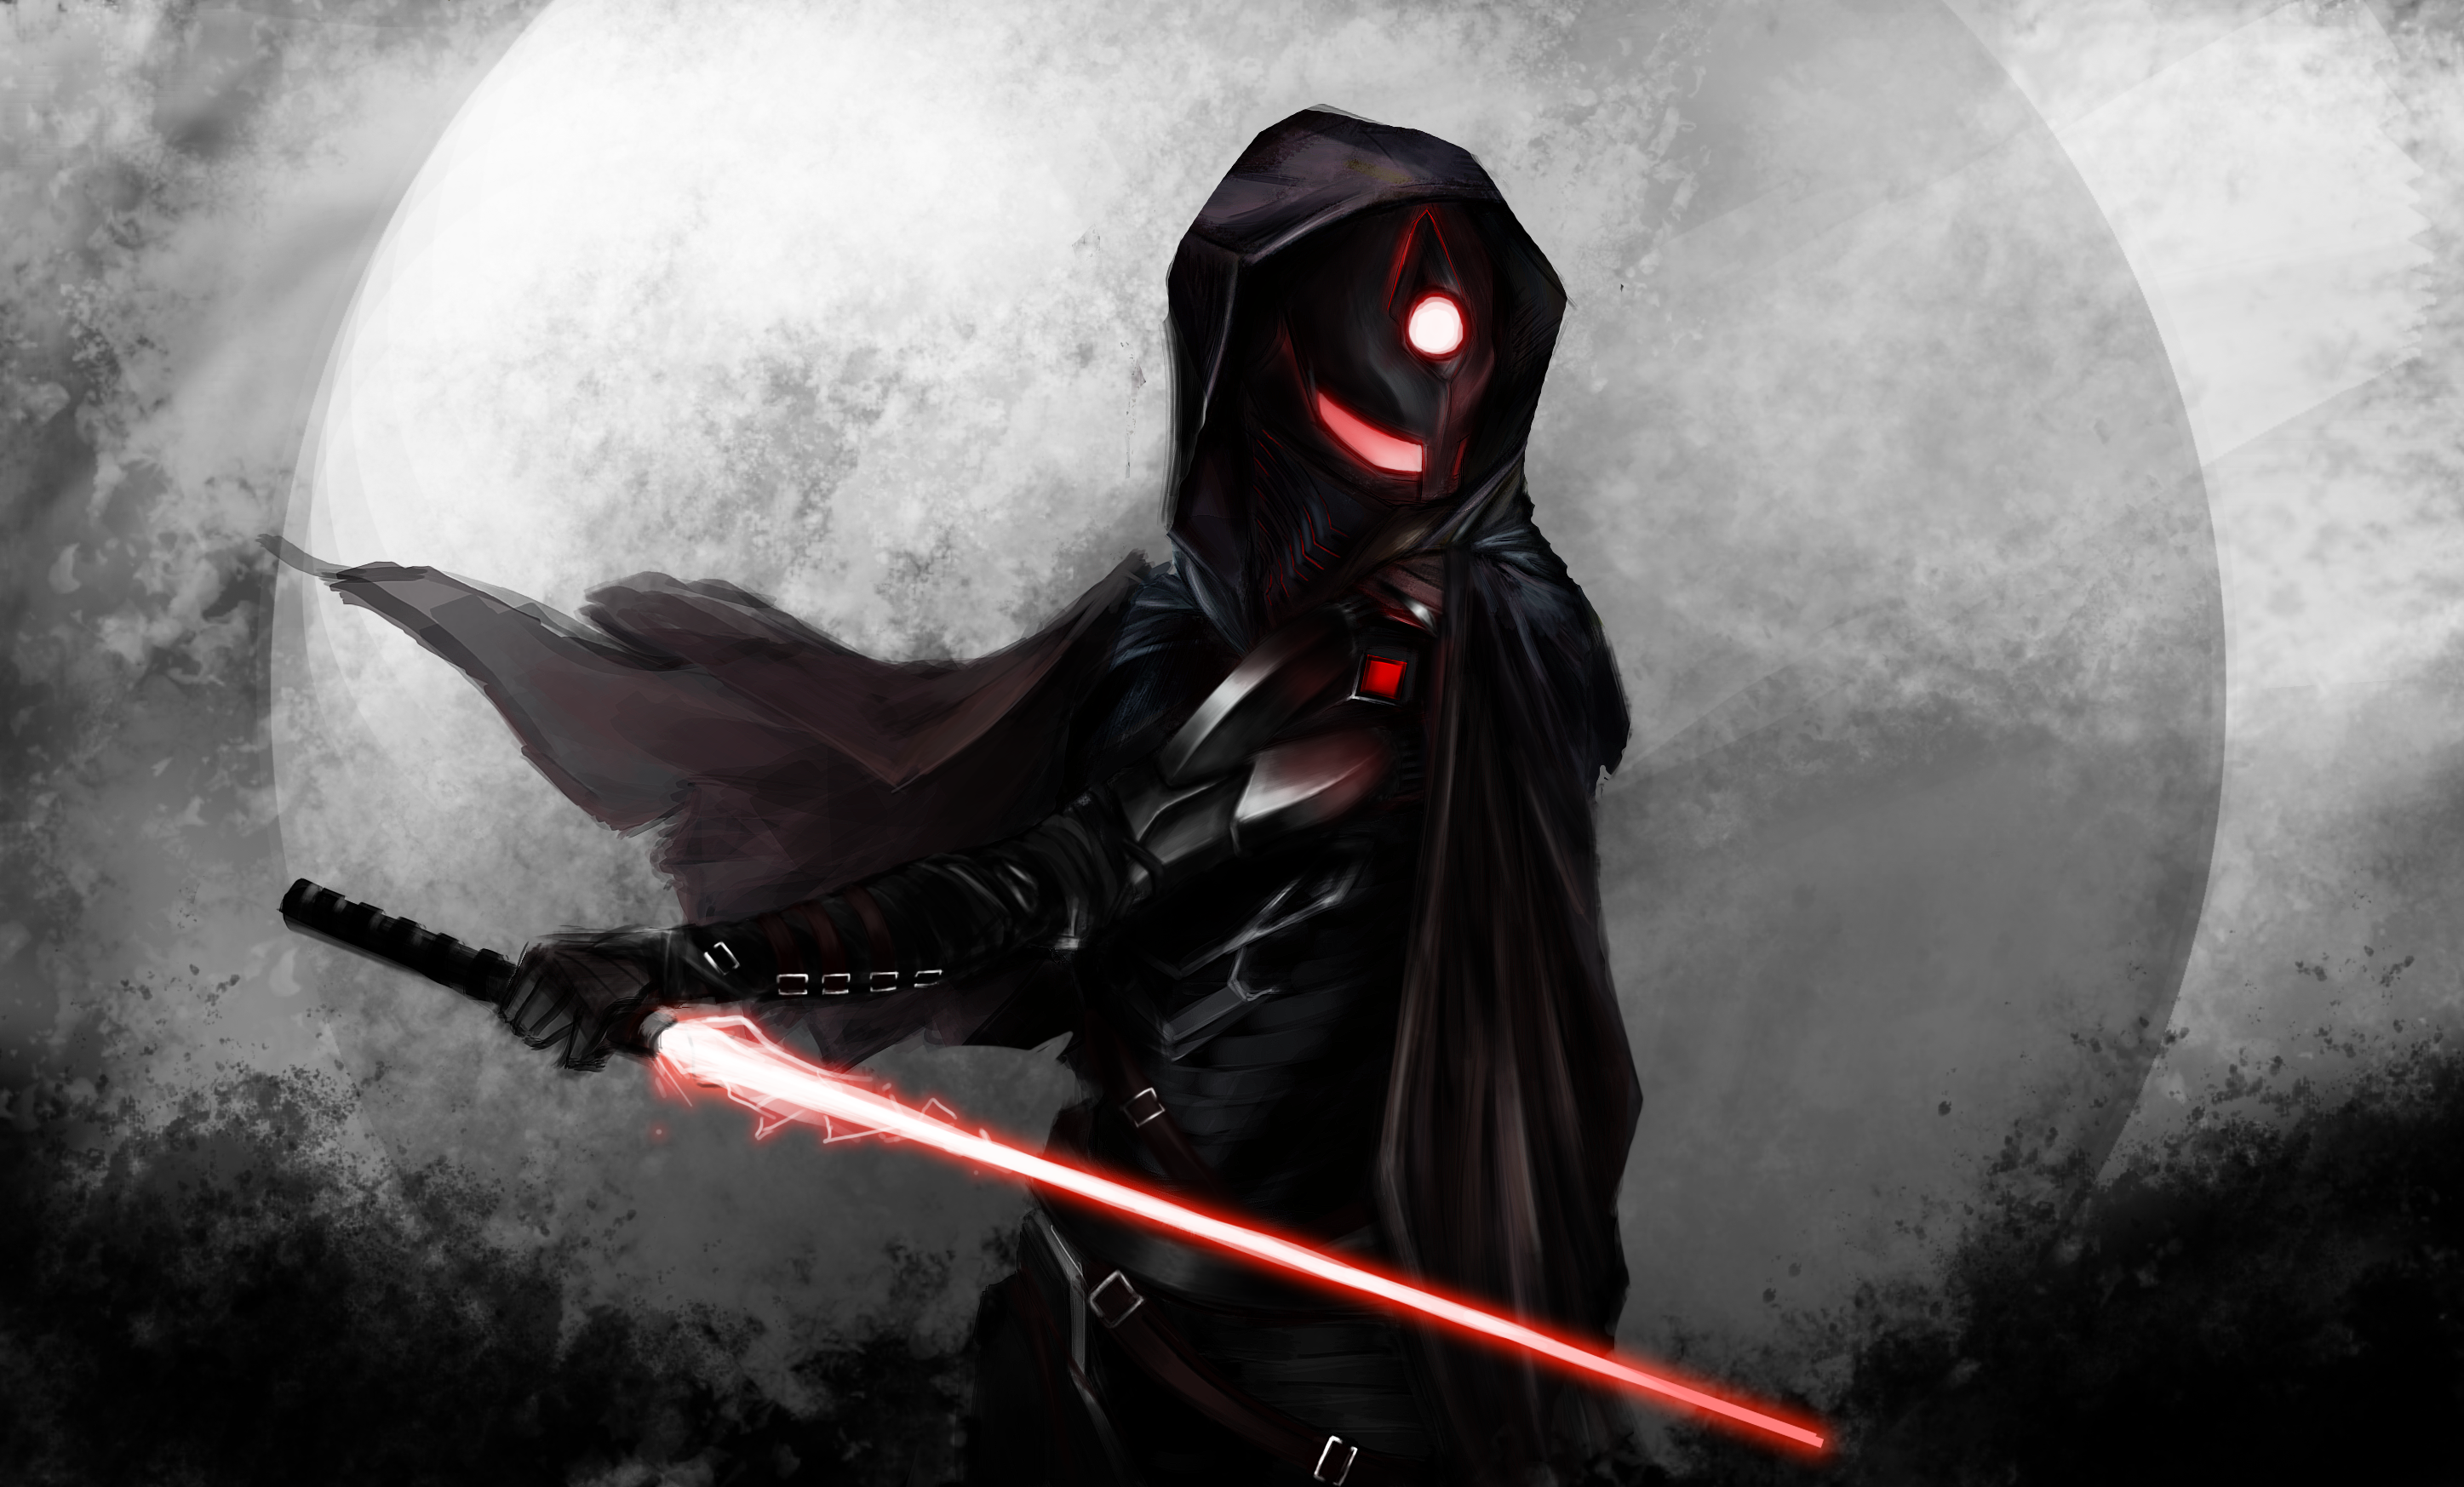 General 2894x1747 science fiction Sith Star Wars